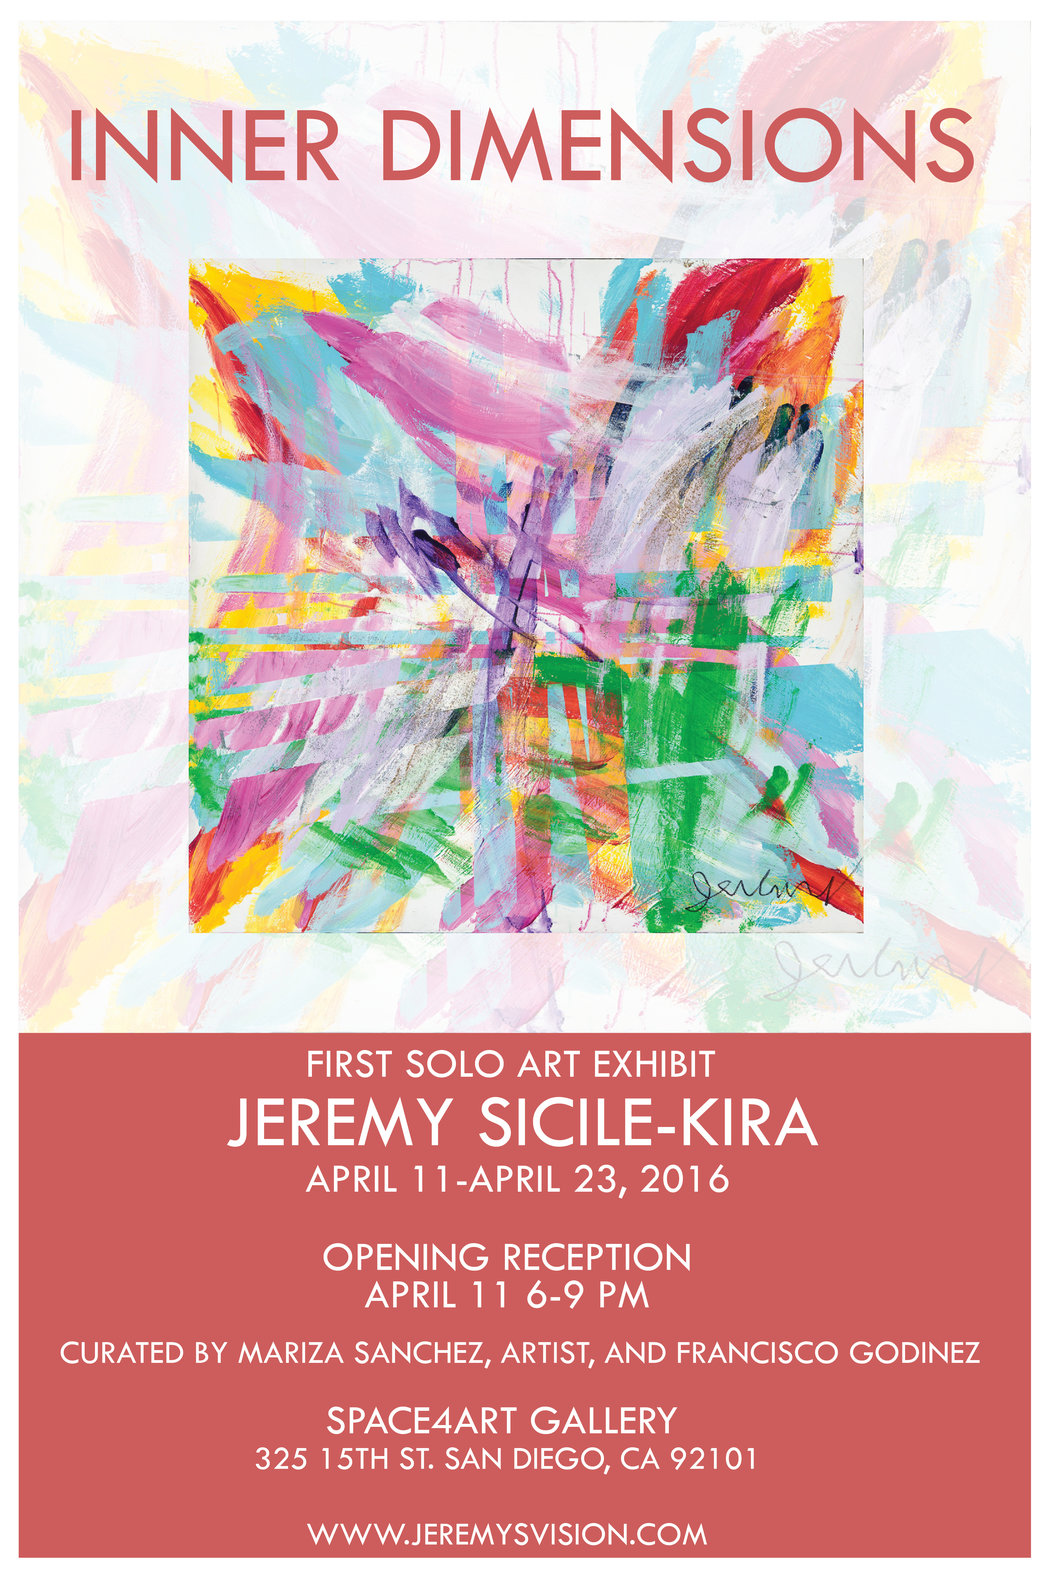 Jeremy Sicile-Kira an artist gifted with seeing people energy fields ...